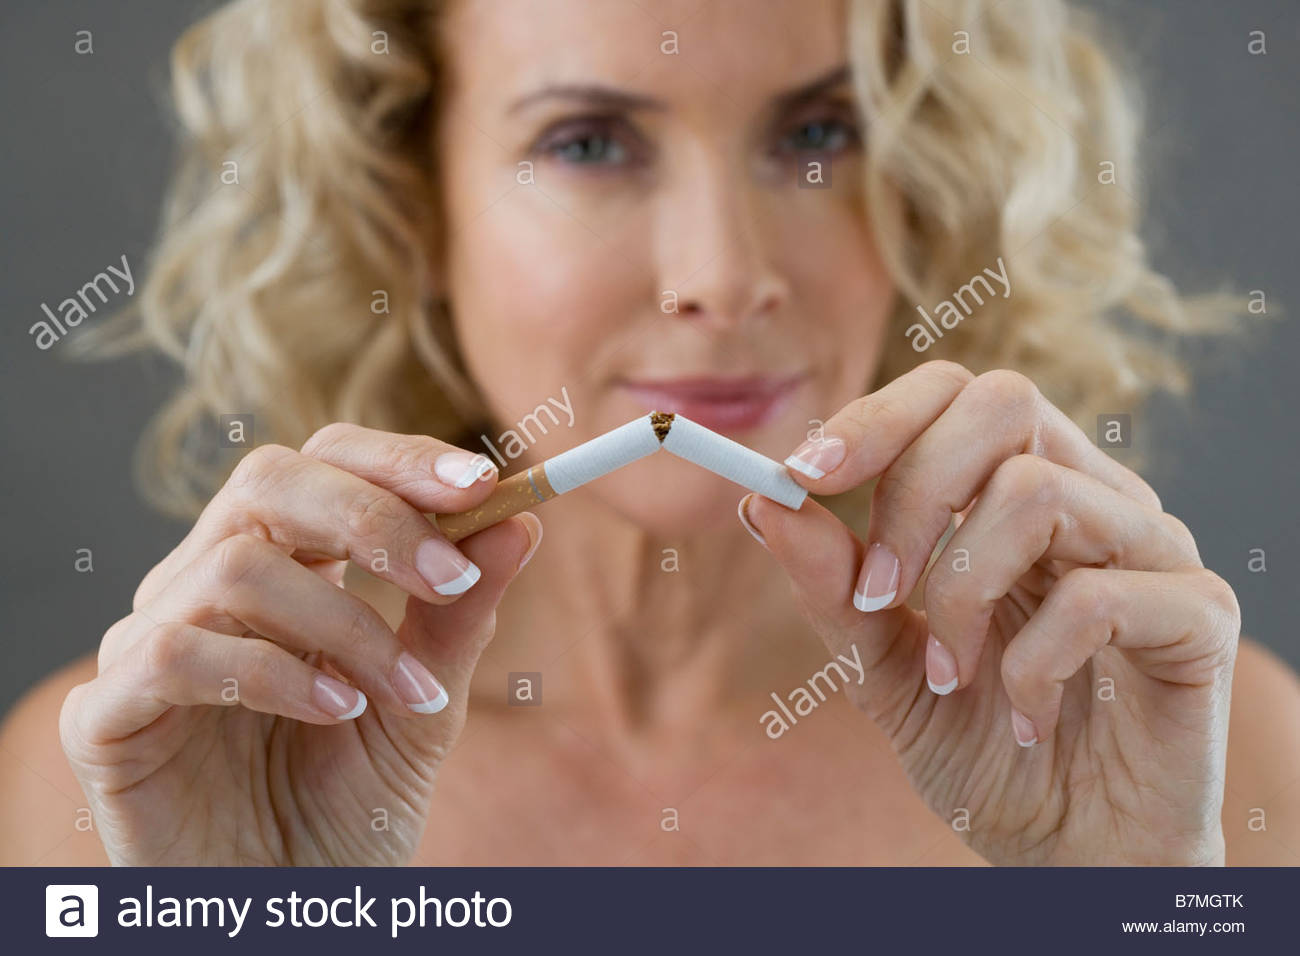 A middle-aged woman breaking a cigarette in half - Stock Image